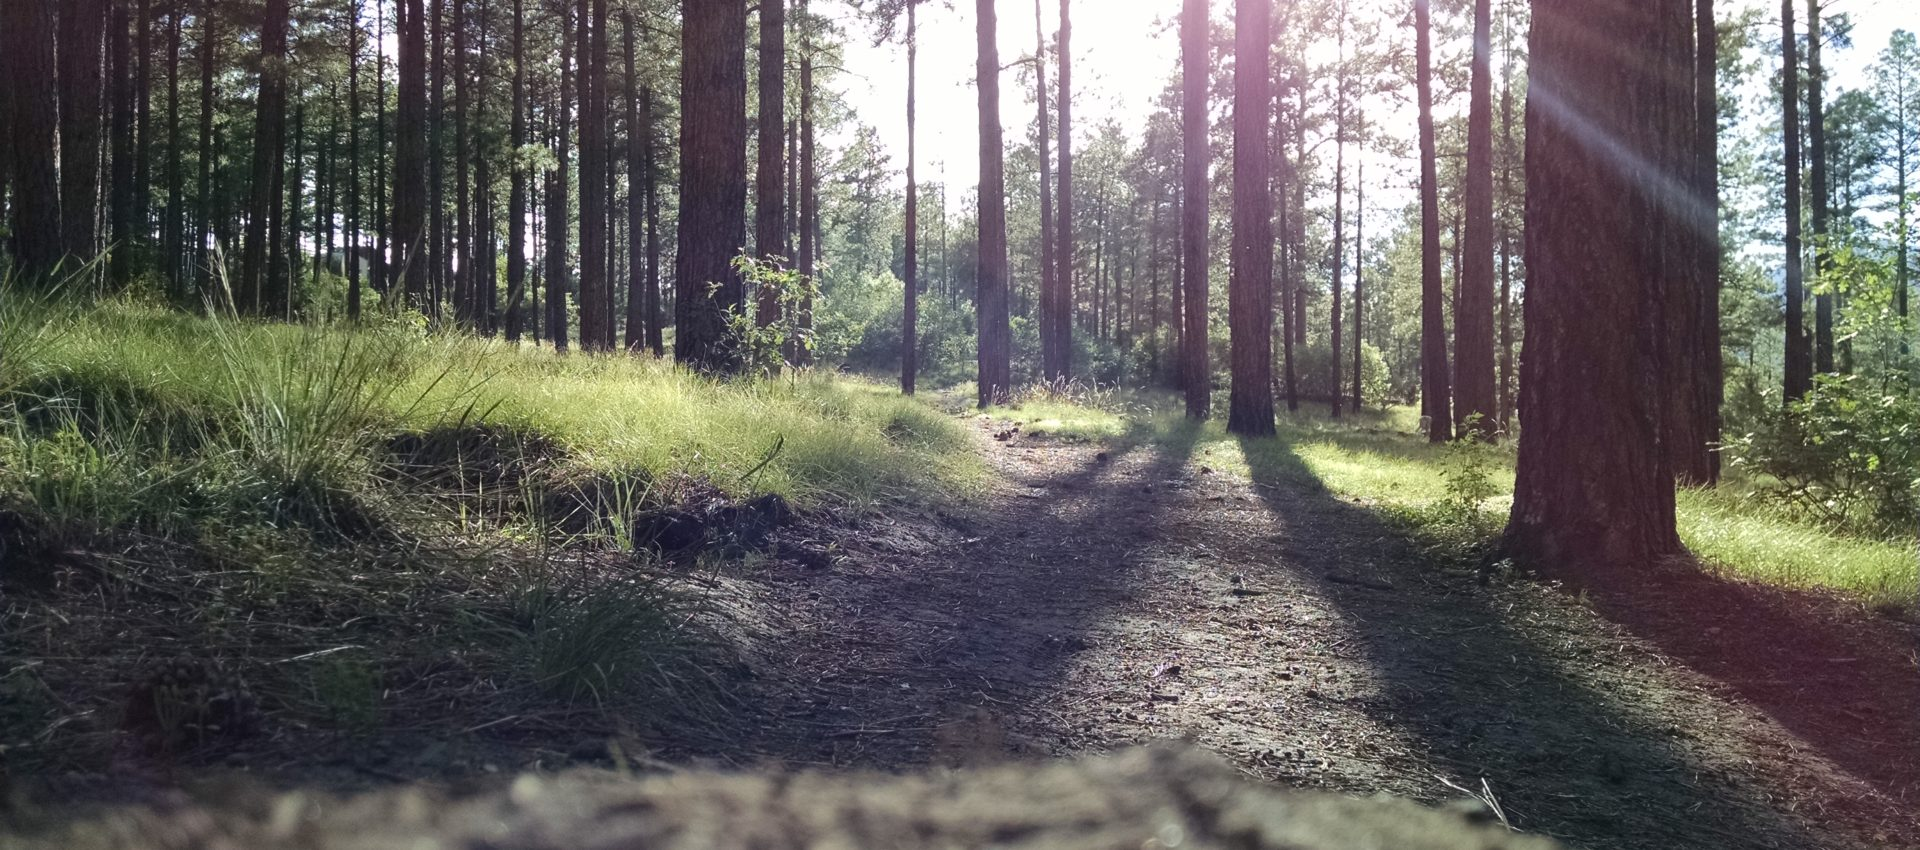 Future Hack: Environment and Forestry hackathon